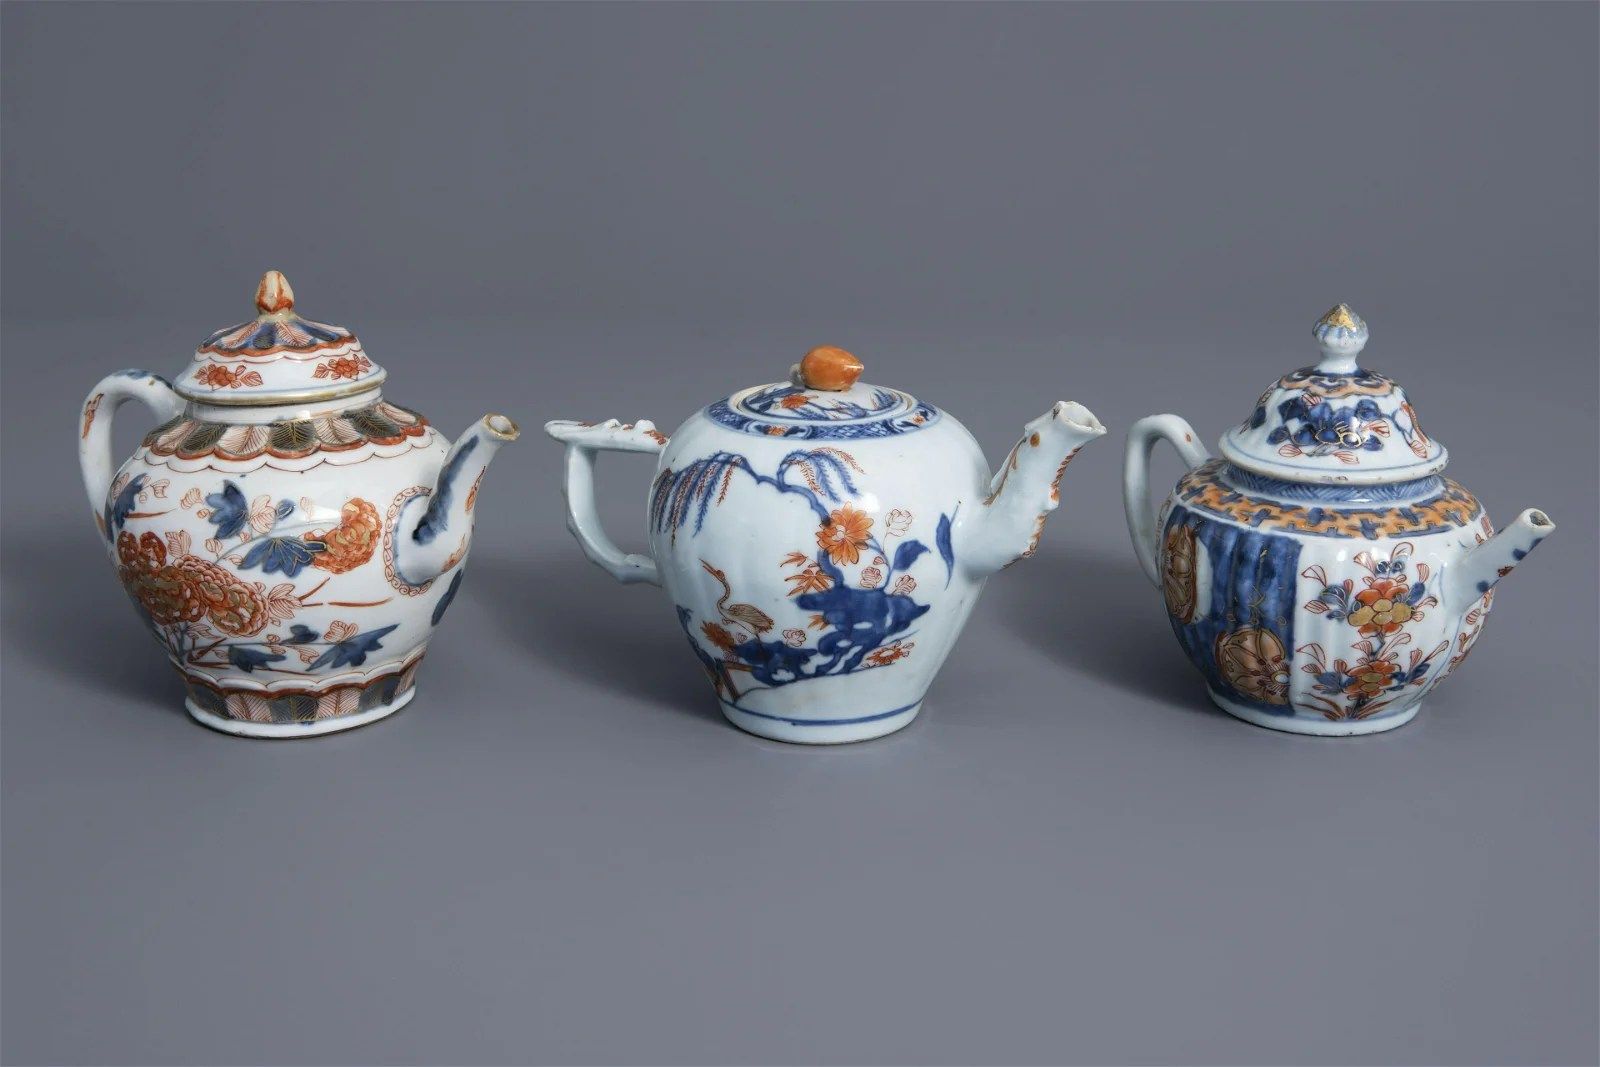 Three Chinese Imari style teapots and covers with